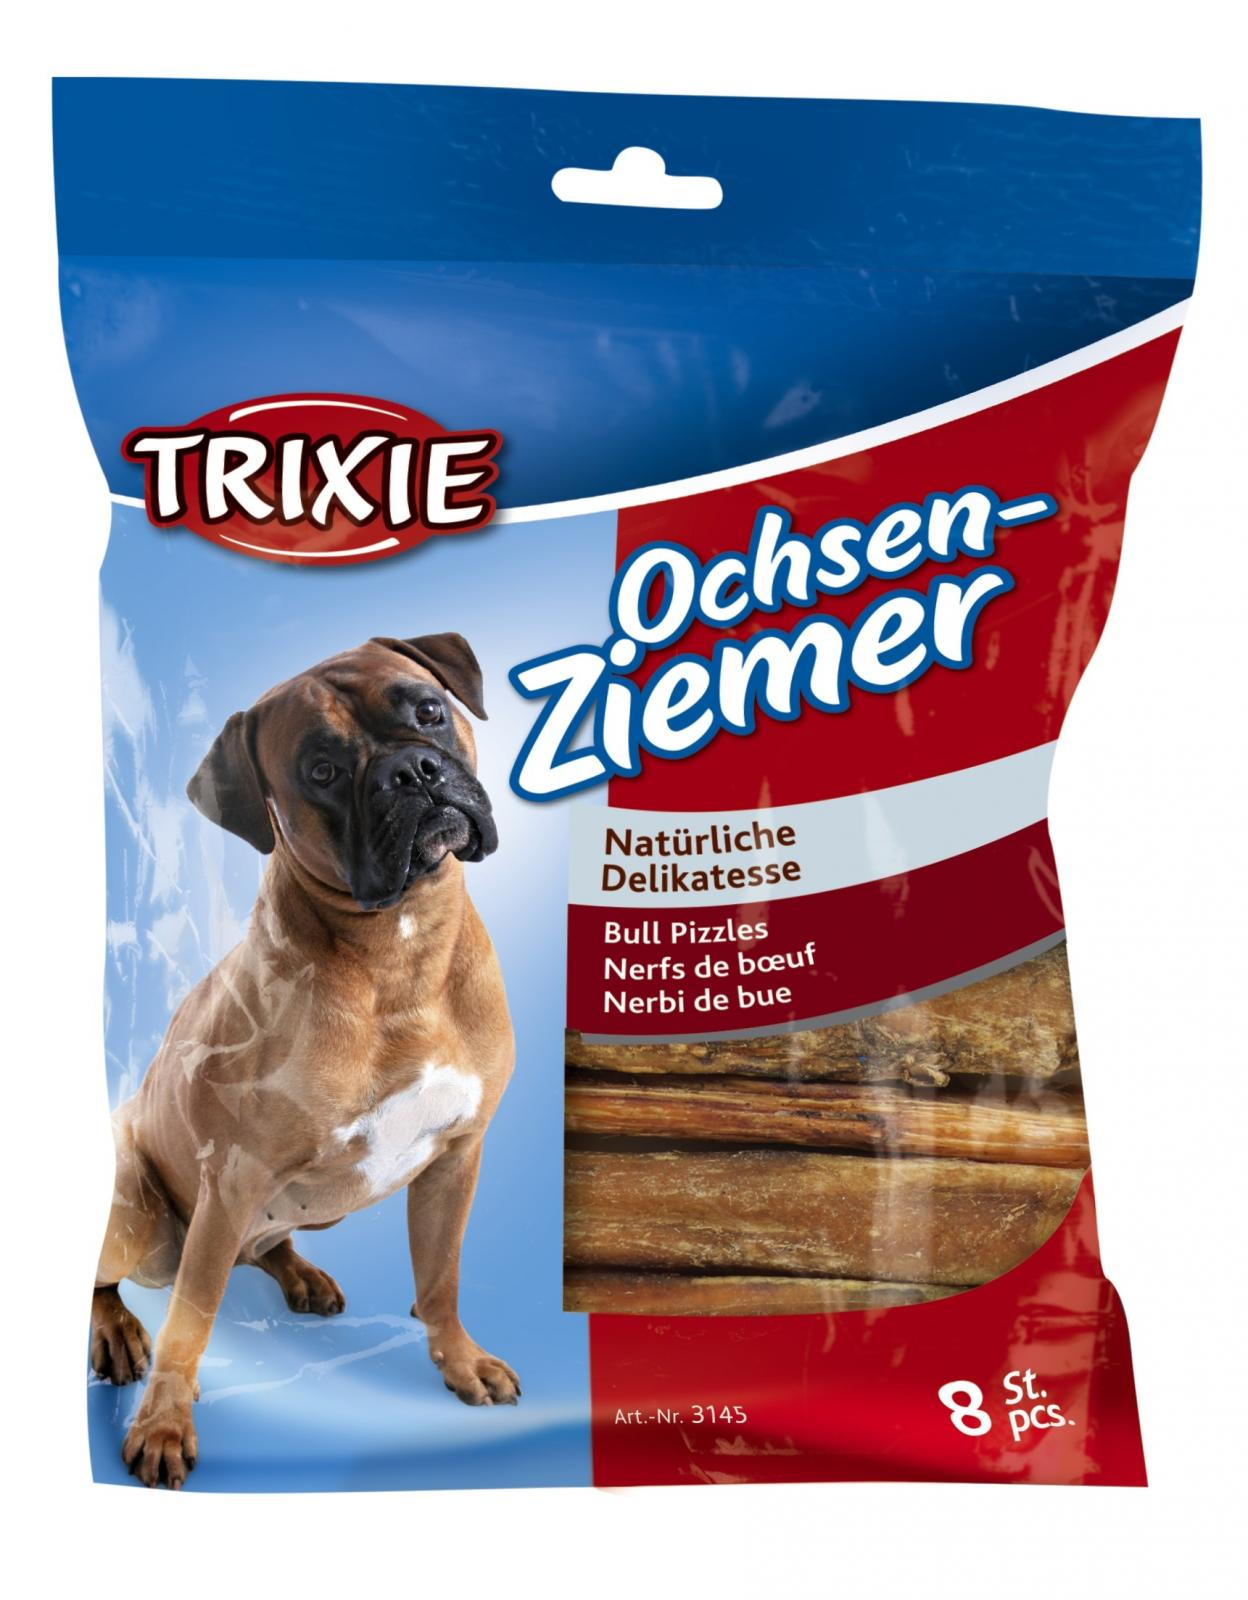 trixie bull pizzles bully sticks pack of 8 dog treats chews 100g mpn 3145 ebay. Black Bedroom Furniture Sets. Home Design Ideas